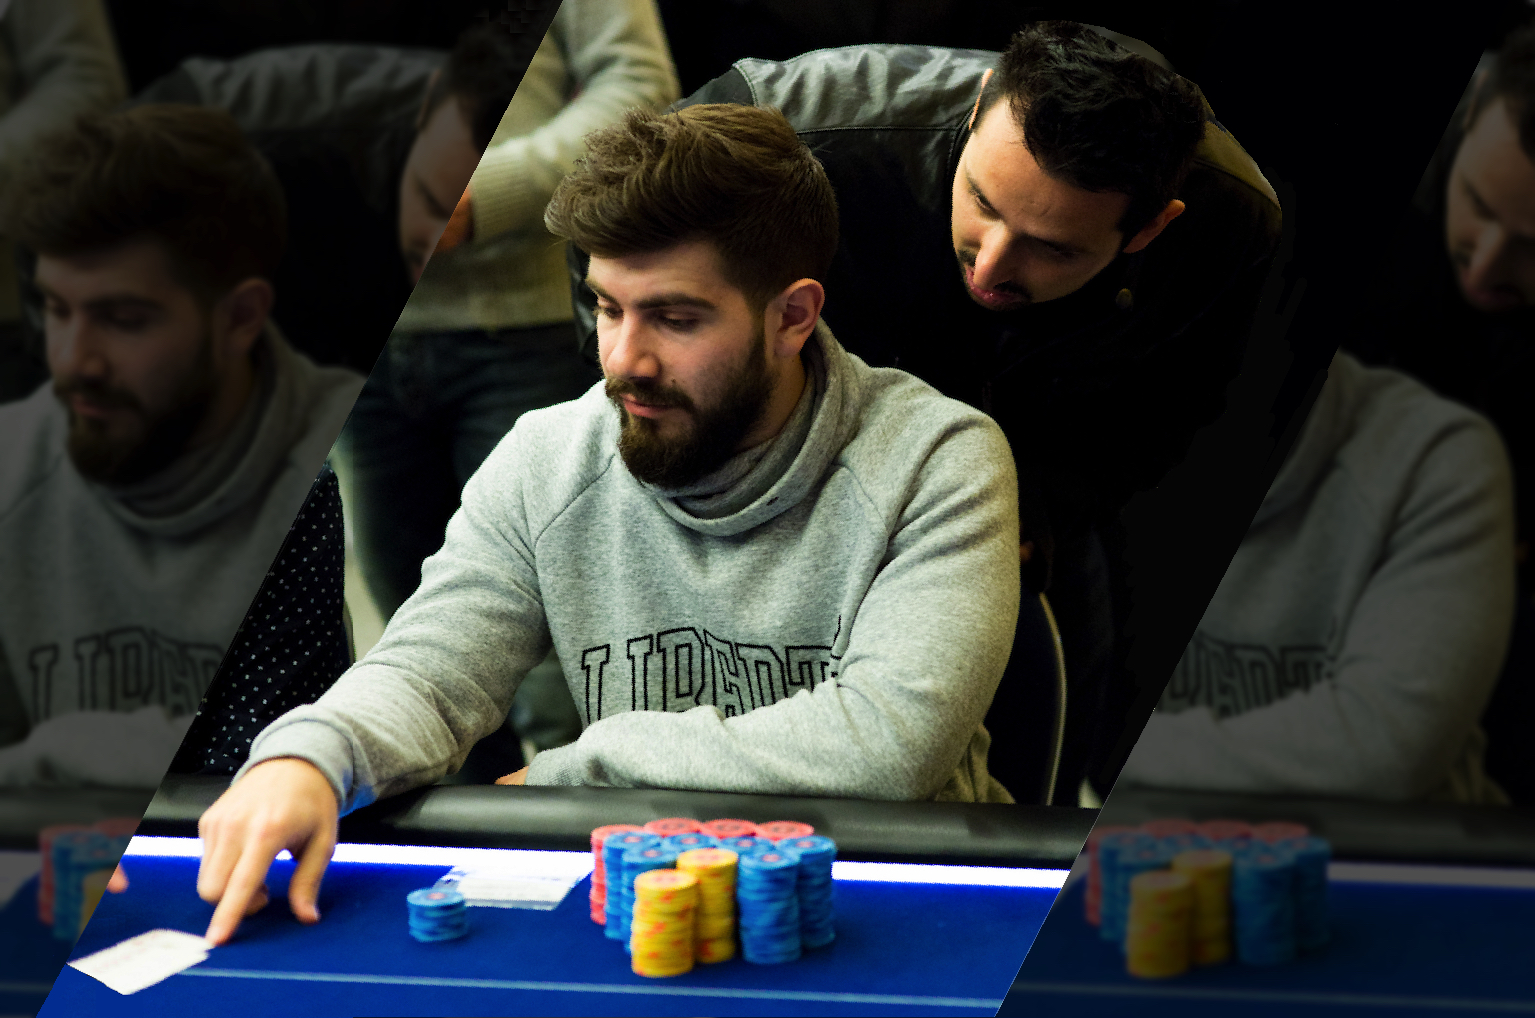 Can You Play Poker With Two Players? | PokerNews